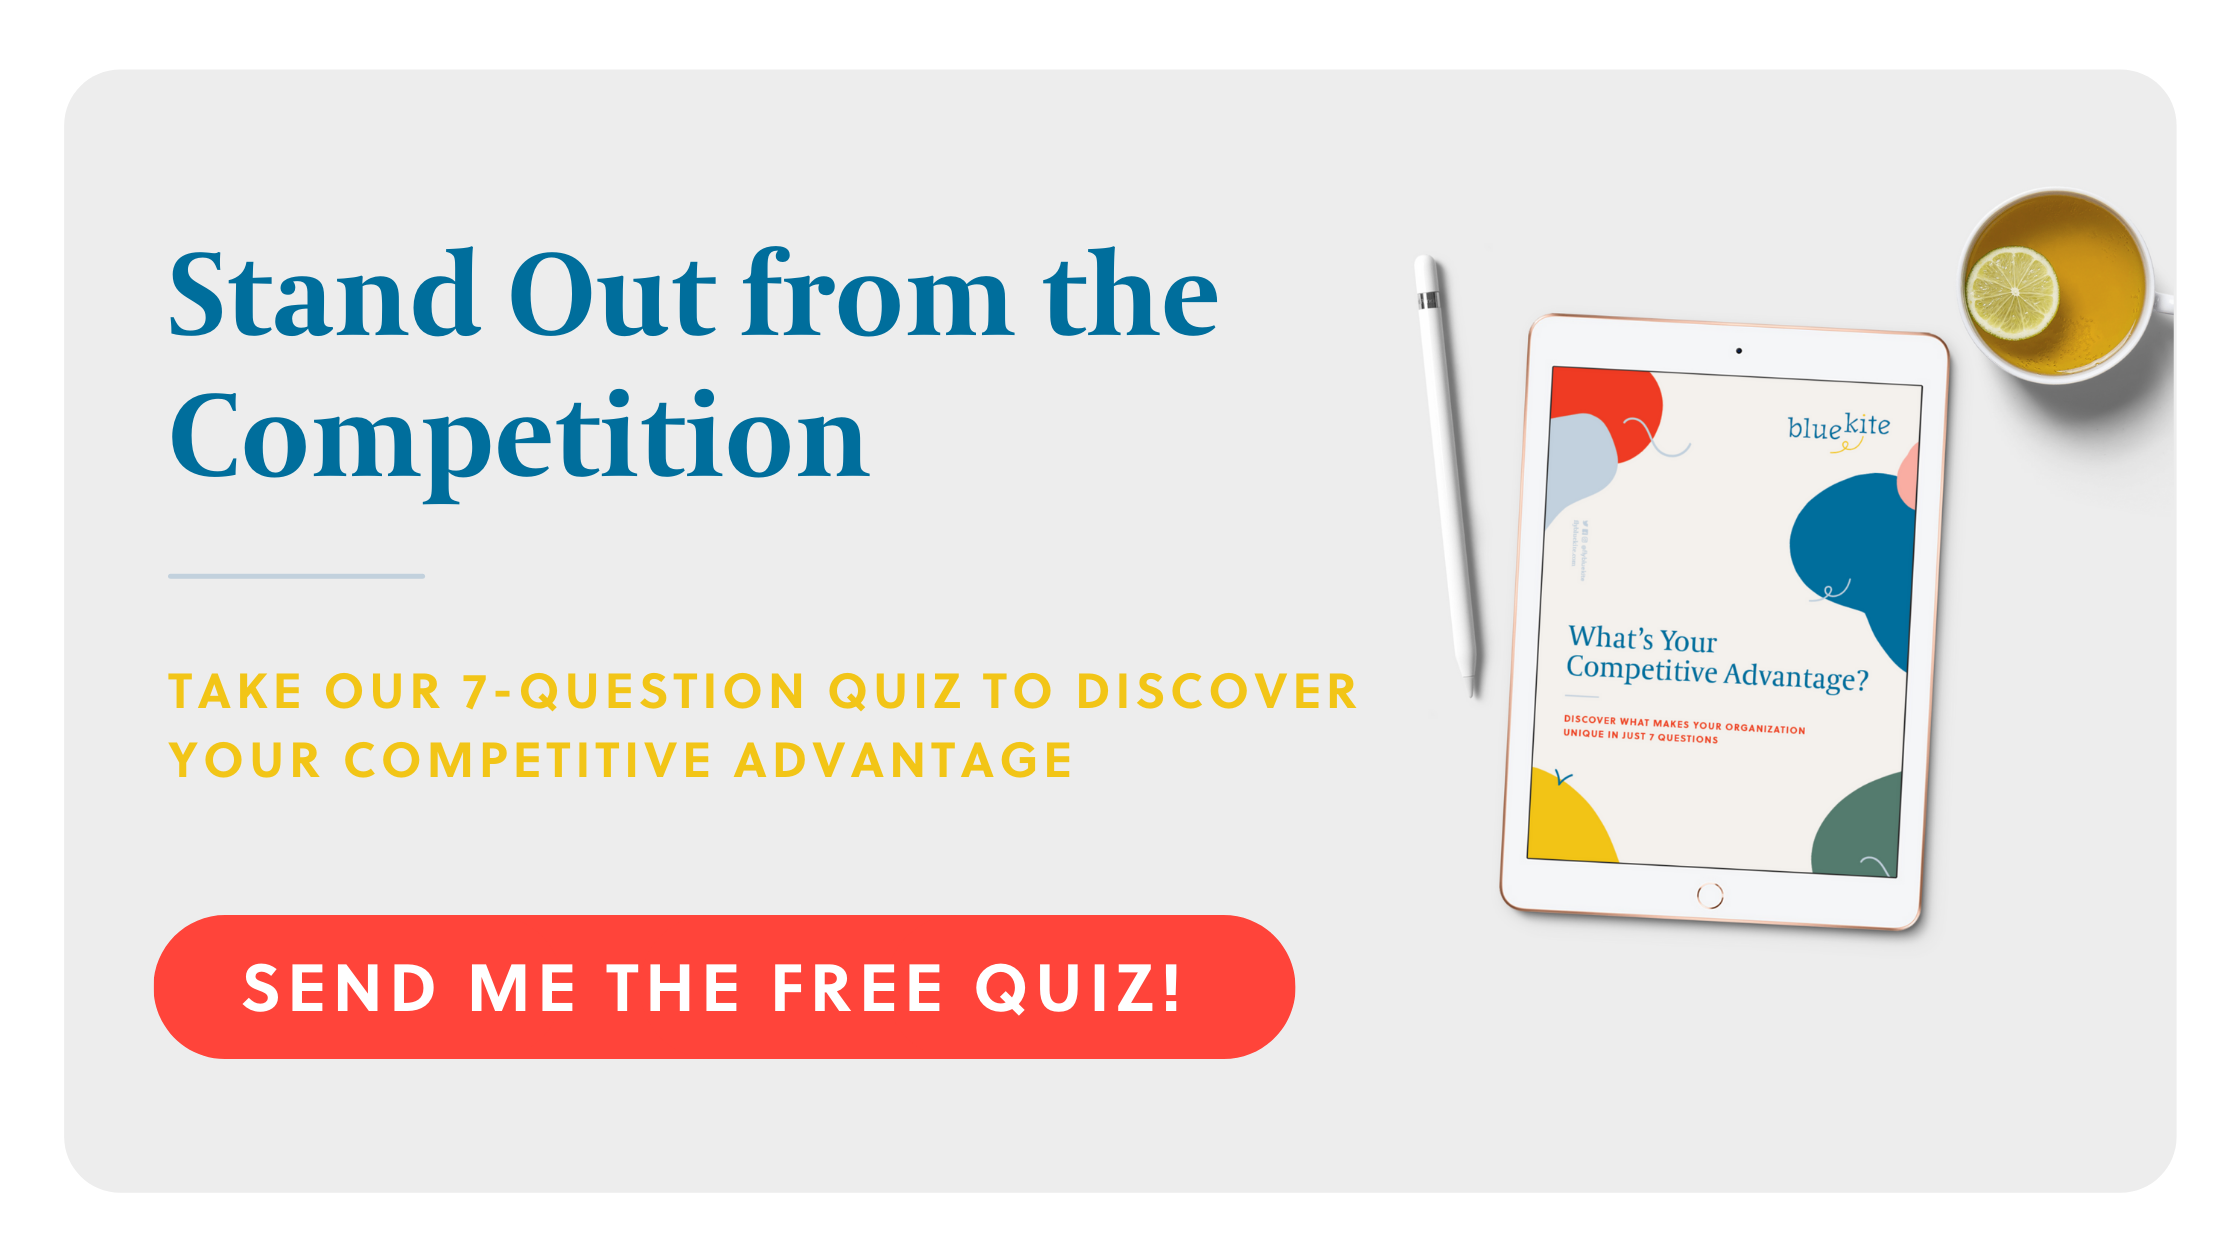 Stand Out from the Competition - Take Our Free Quiz